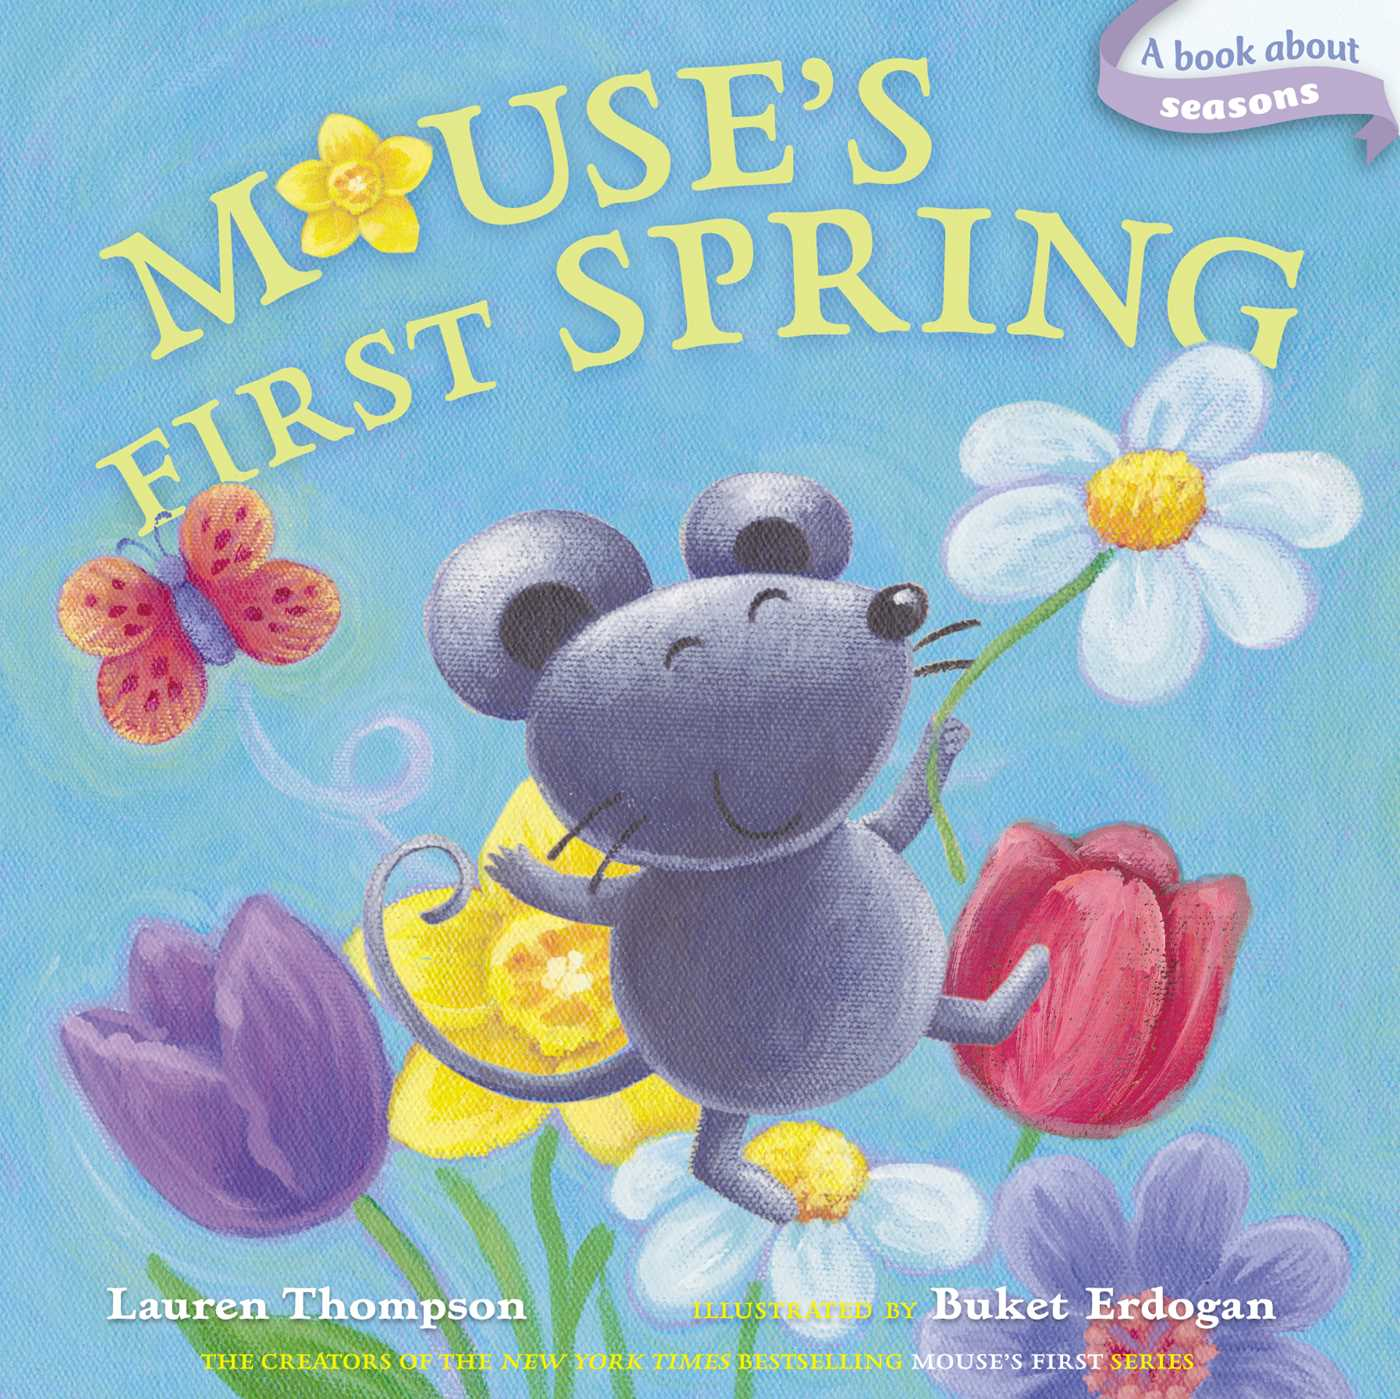 Mouses first spring 9781442447110 hr